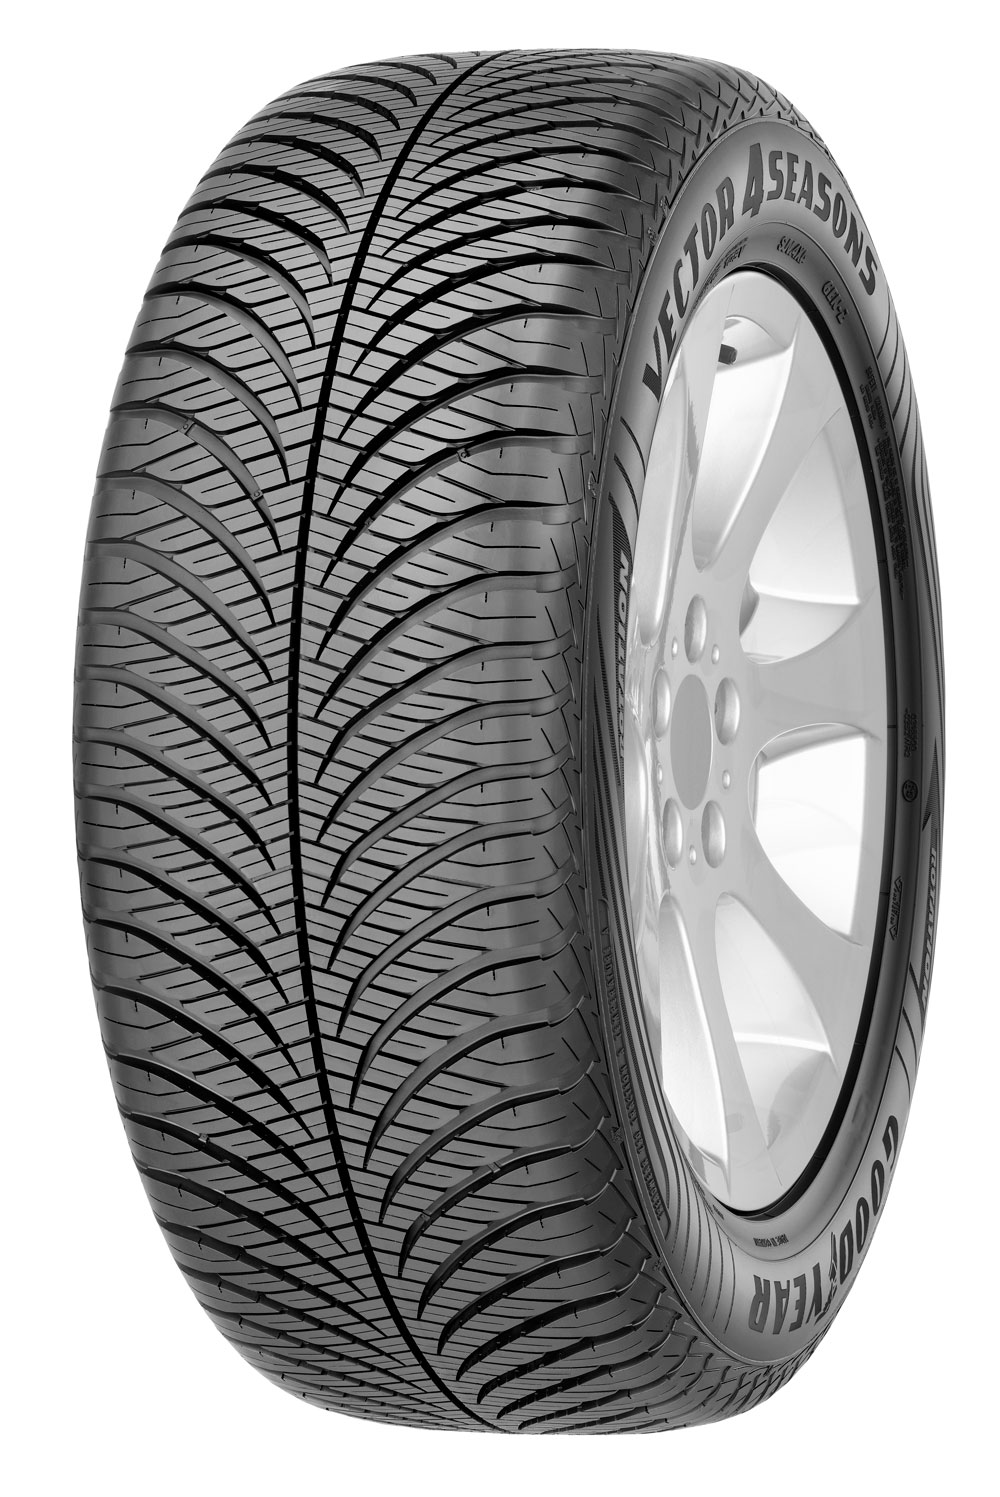 Anvelopa all seasons GOODYEAR VECTOR-4S G2 XL 205/50 R17 93V